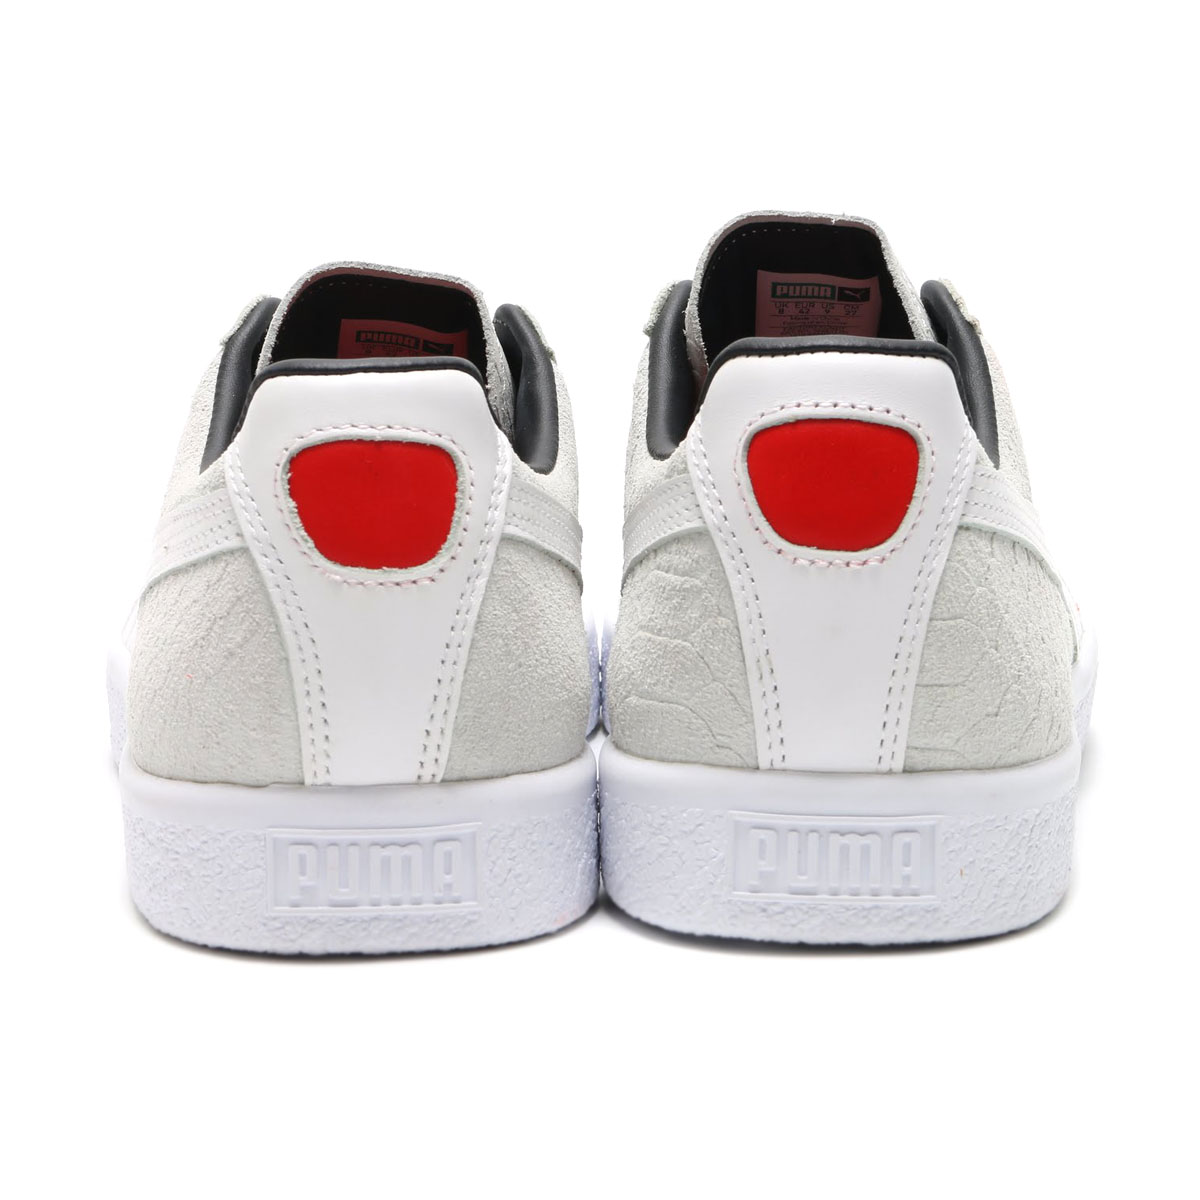 PUMA CLYDE GCC (퓨마 클라이드 GCC) (03 PUMA WHITE-PU) 17 SP-I